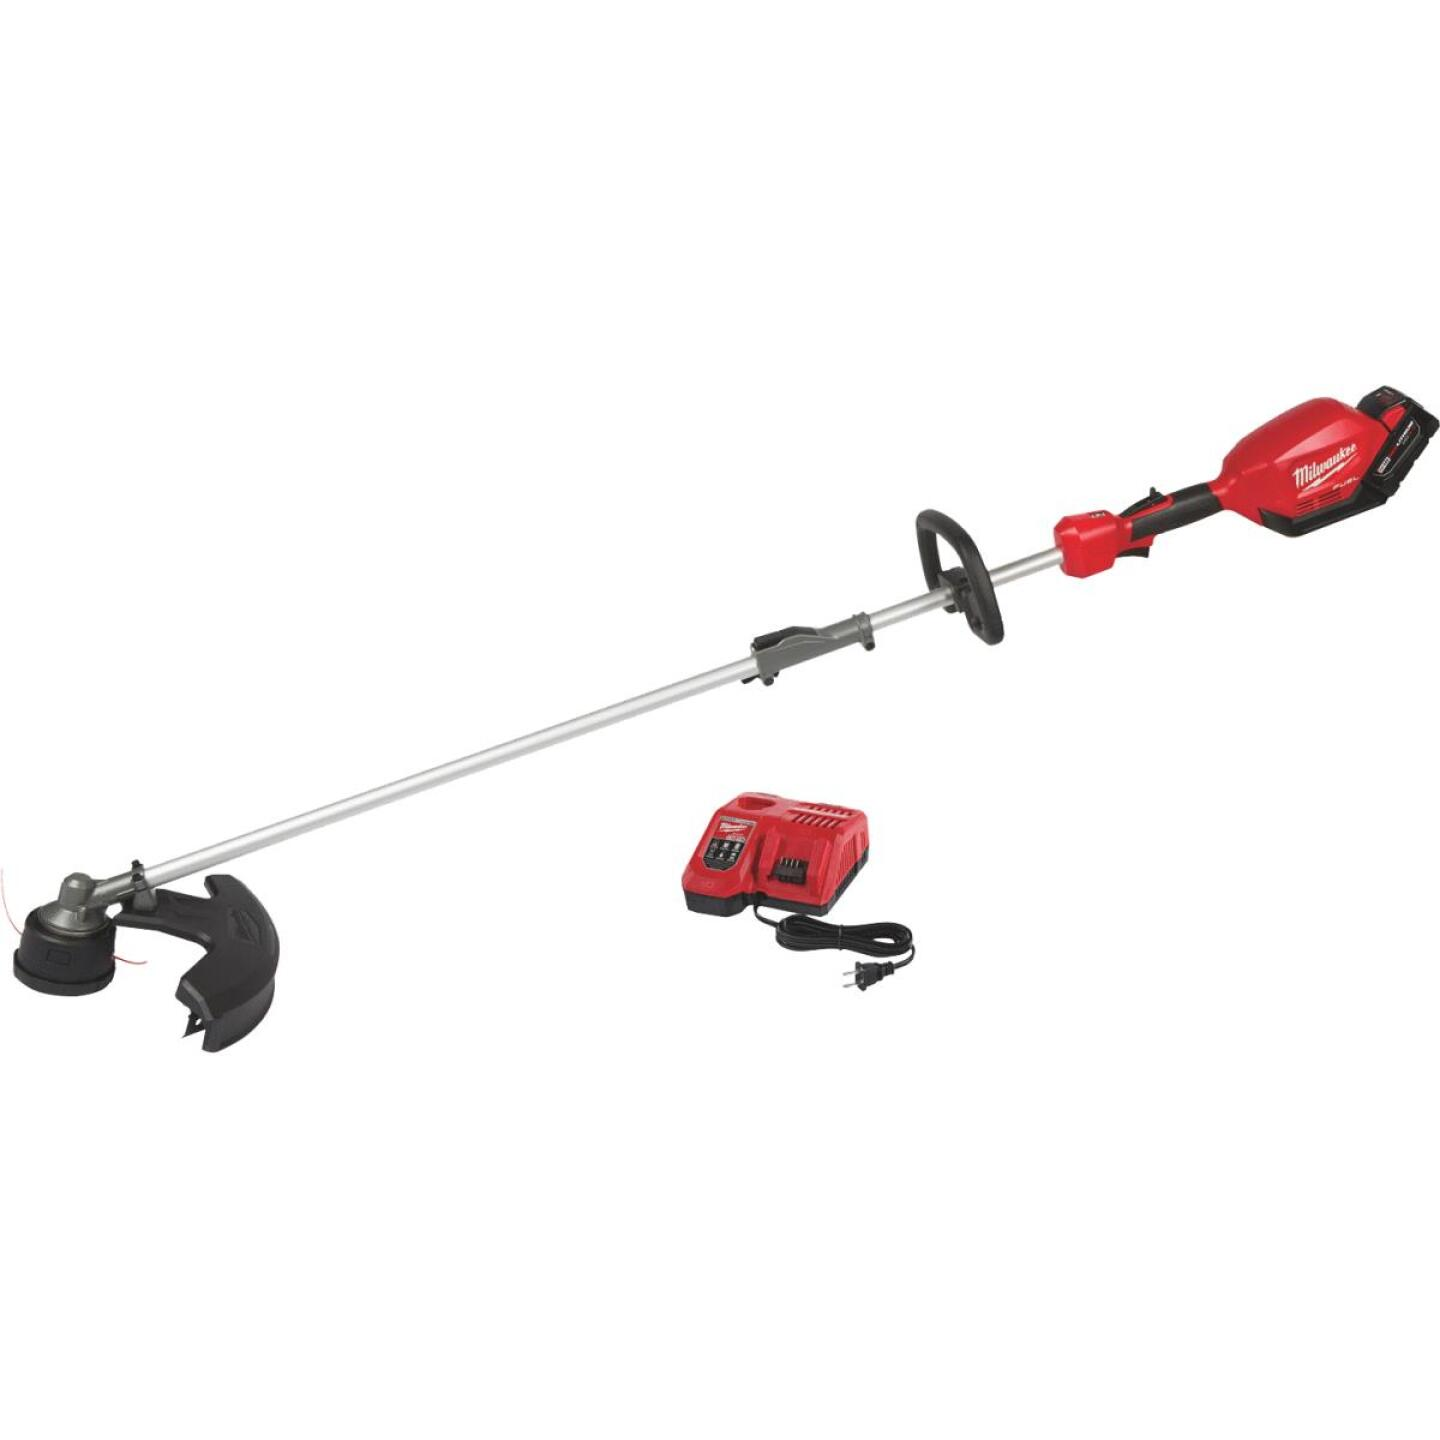 Milwaukee M18 FUEL 18V 16 In. Lithium-Ion Attachment System Cordless String Trimmer Image 1